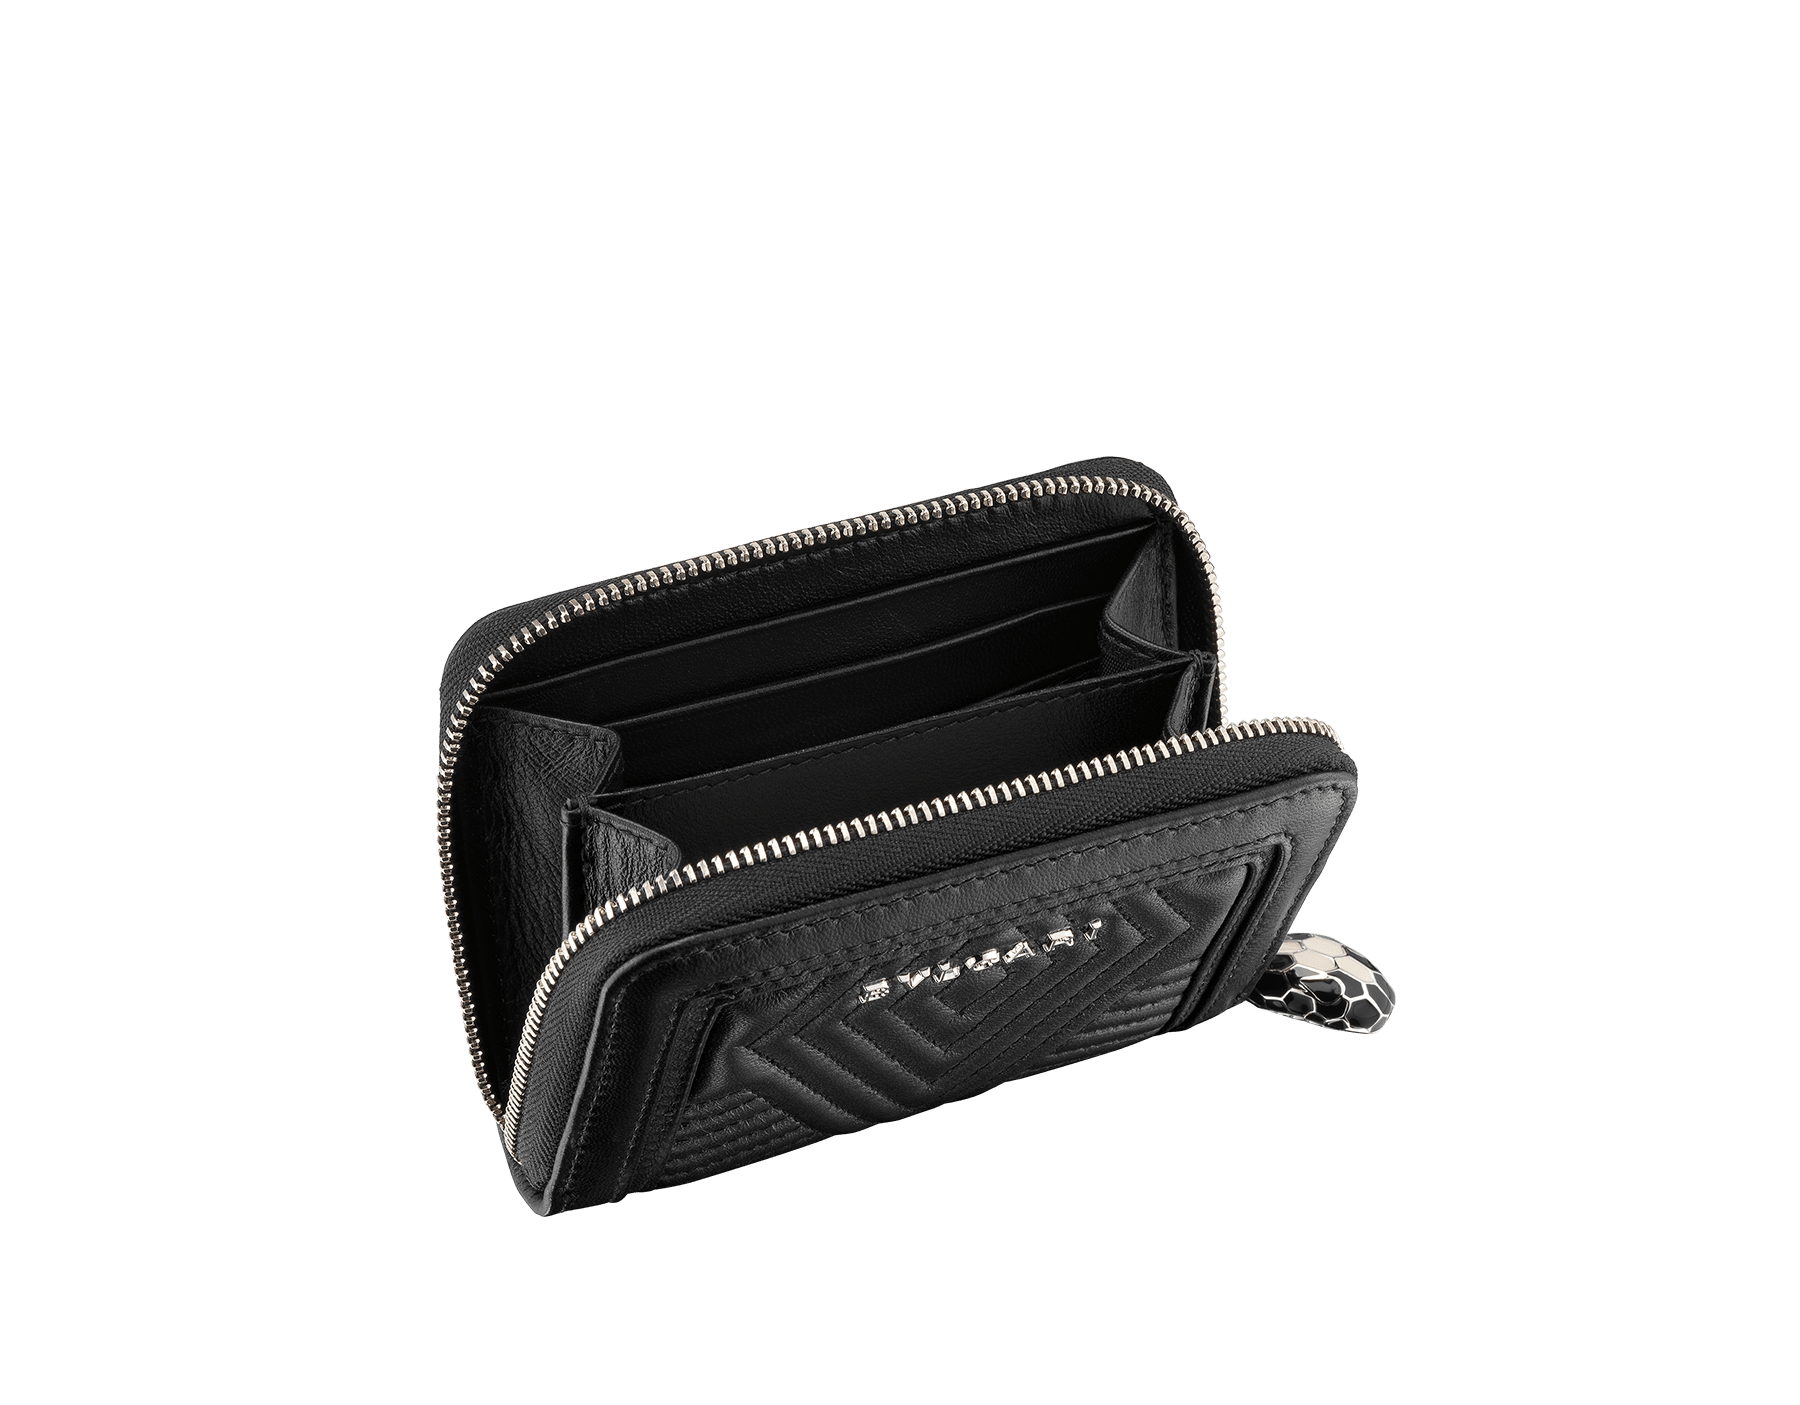 Serpenti Diamond Blast mini zipped wallet in black quilted nappa leather. Iconic snakehead zip puller in black and white enamel, with black enamel eyes. 287584 image 2